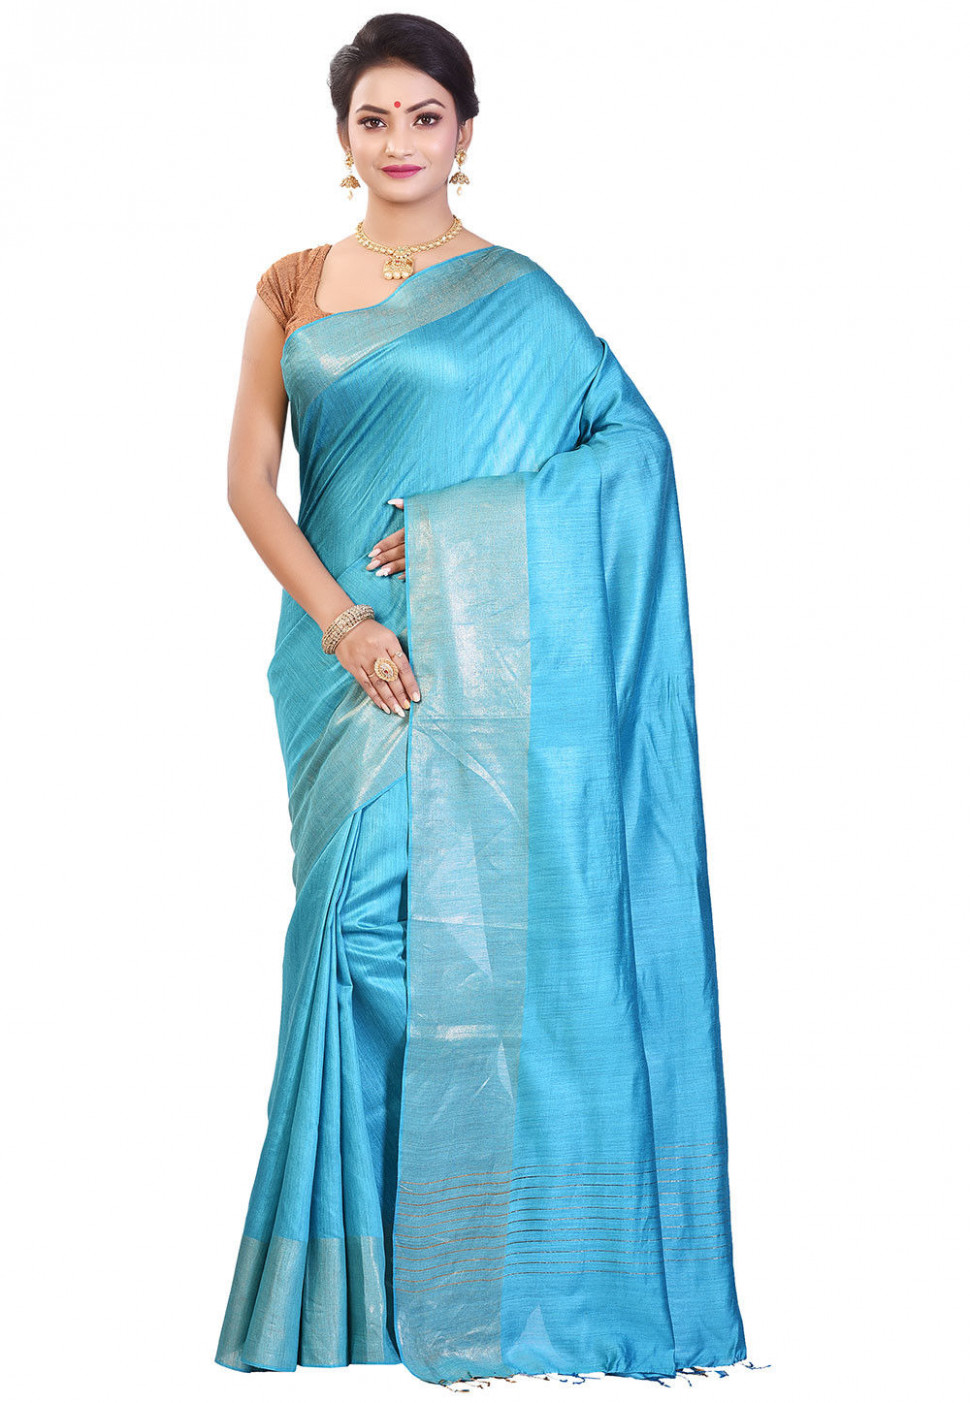 Handloom Pure Muga Silk Saree in Sky Blue : SHXA1223